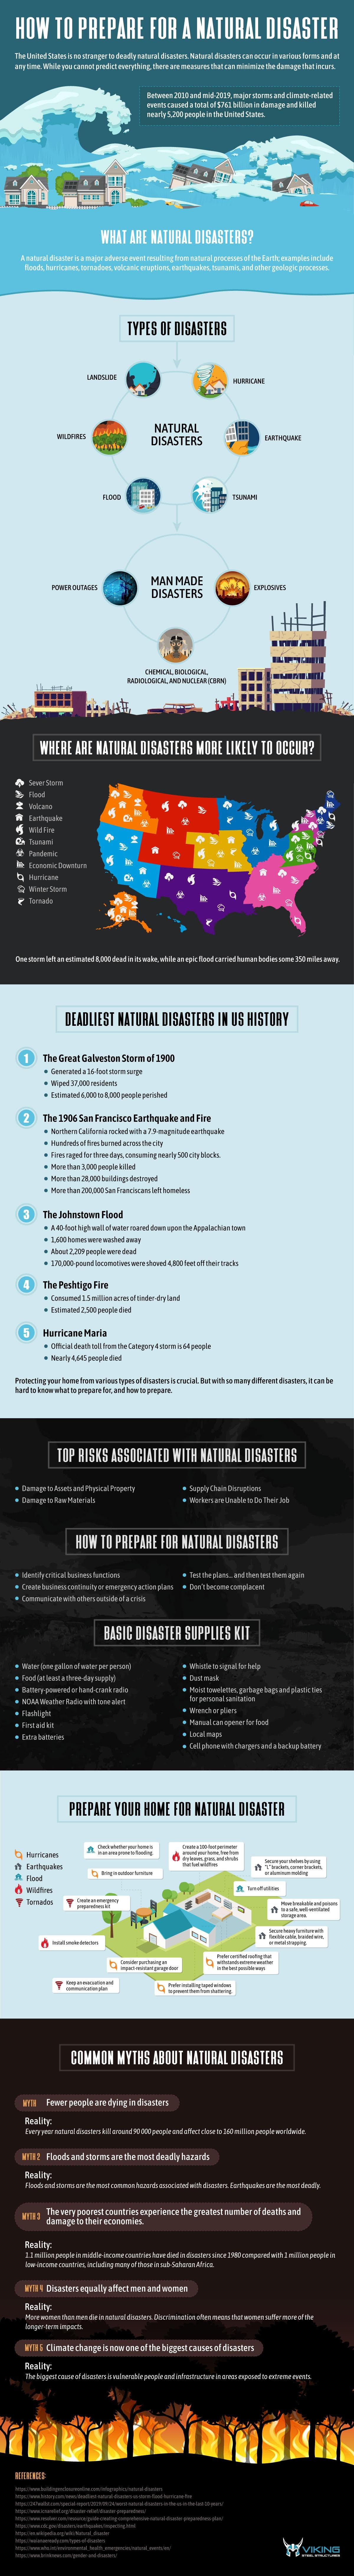 How To Prepare for a Natural Disaster #infographic